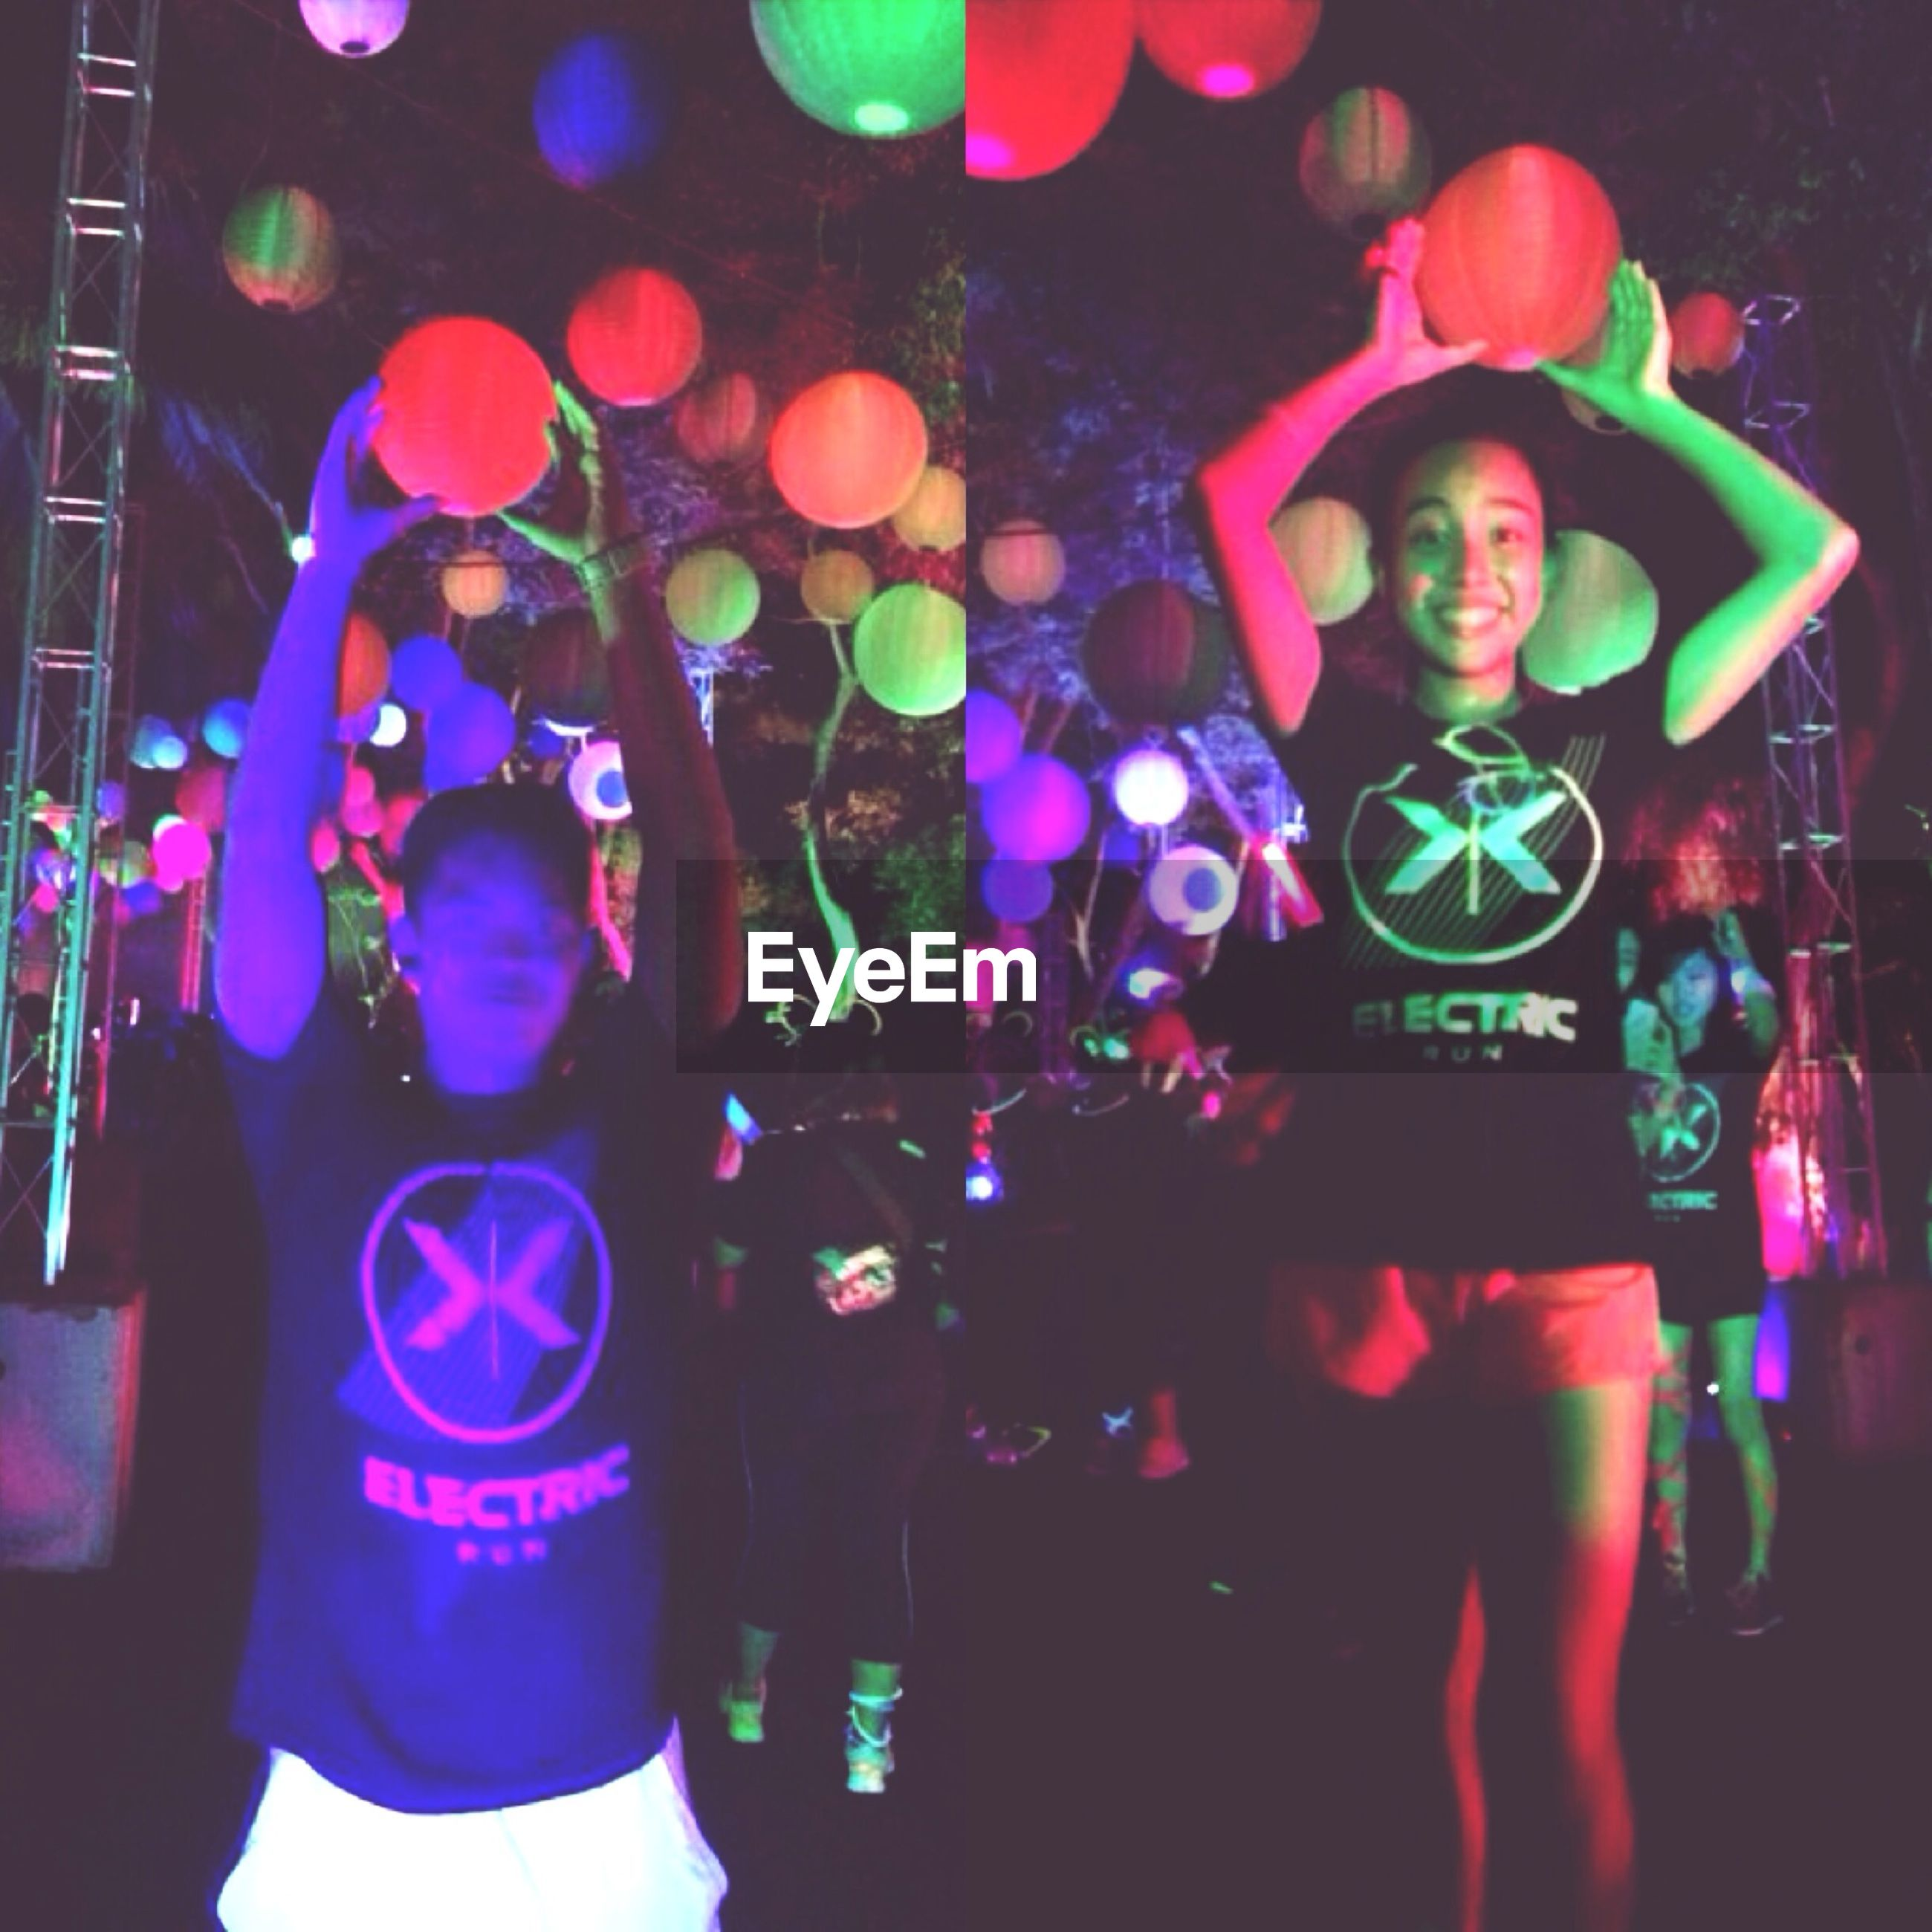 indoors, lifestyles, leisure activity, men, arts culture and entertainment, music, illuminated, nightlife, multi colored, high angle view, person, close-up, celebration, unrecognizable person, nightclub, standing, enjoyment, night